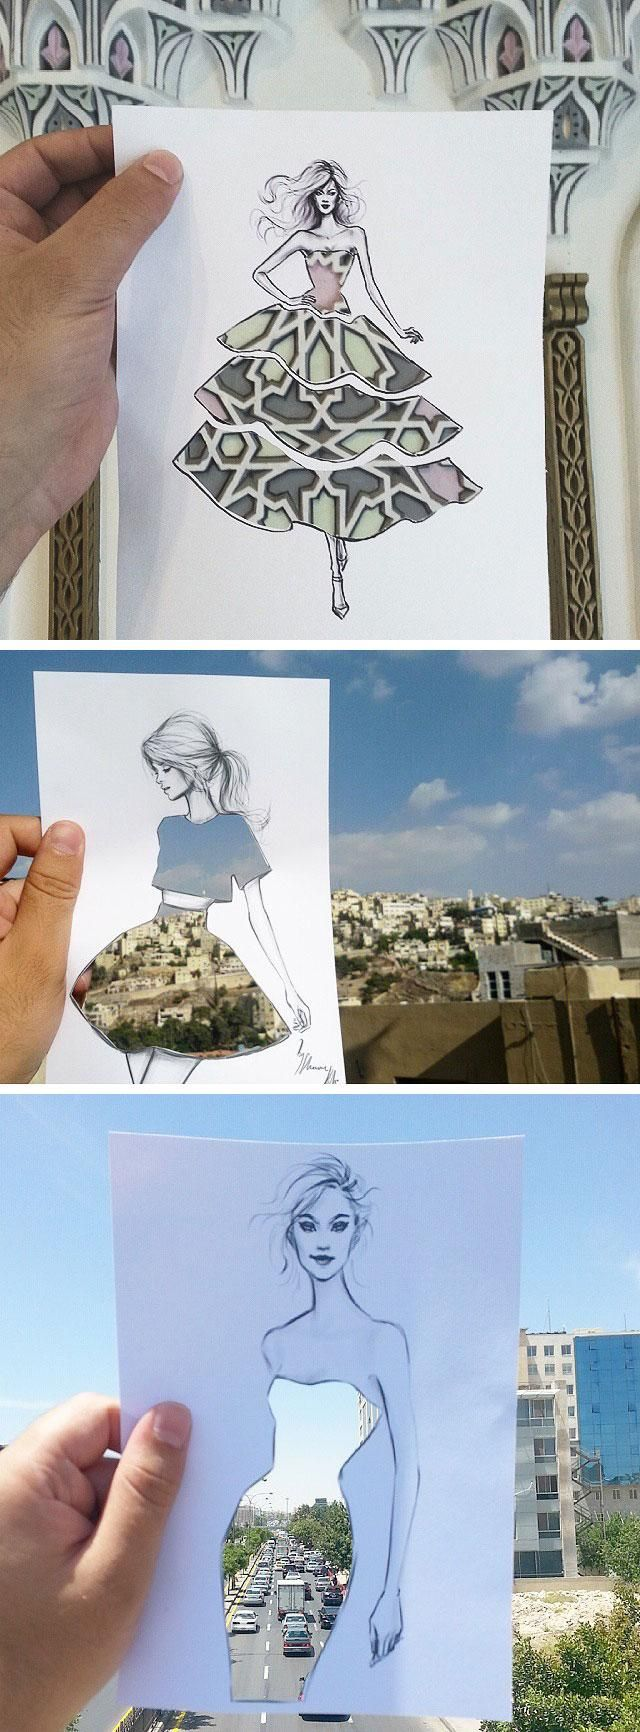 Fashion illustrator Shamekh Bluwi wanted to share his traveling experiences with his followers so he decided to blend his high-fashion with the visual elements of his daily surroundings.